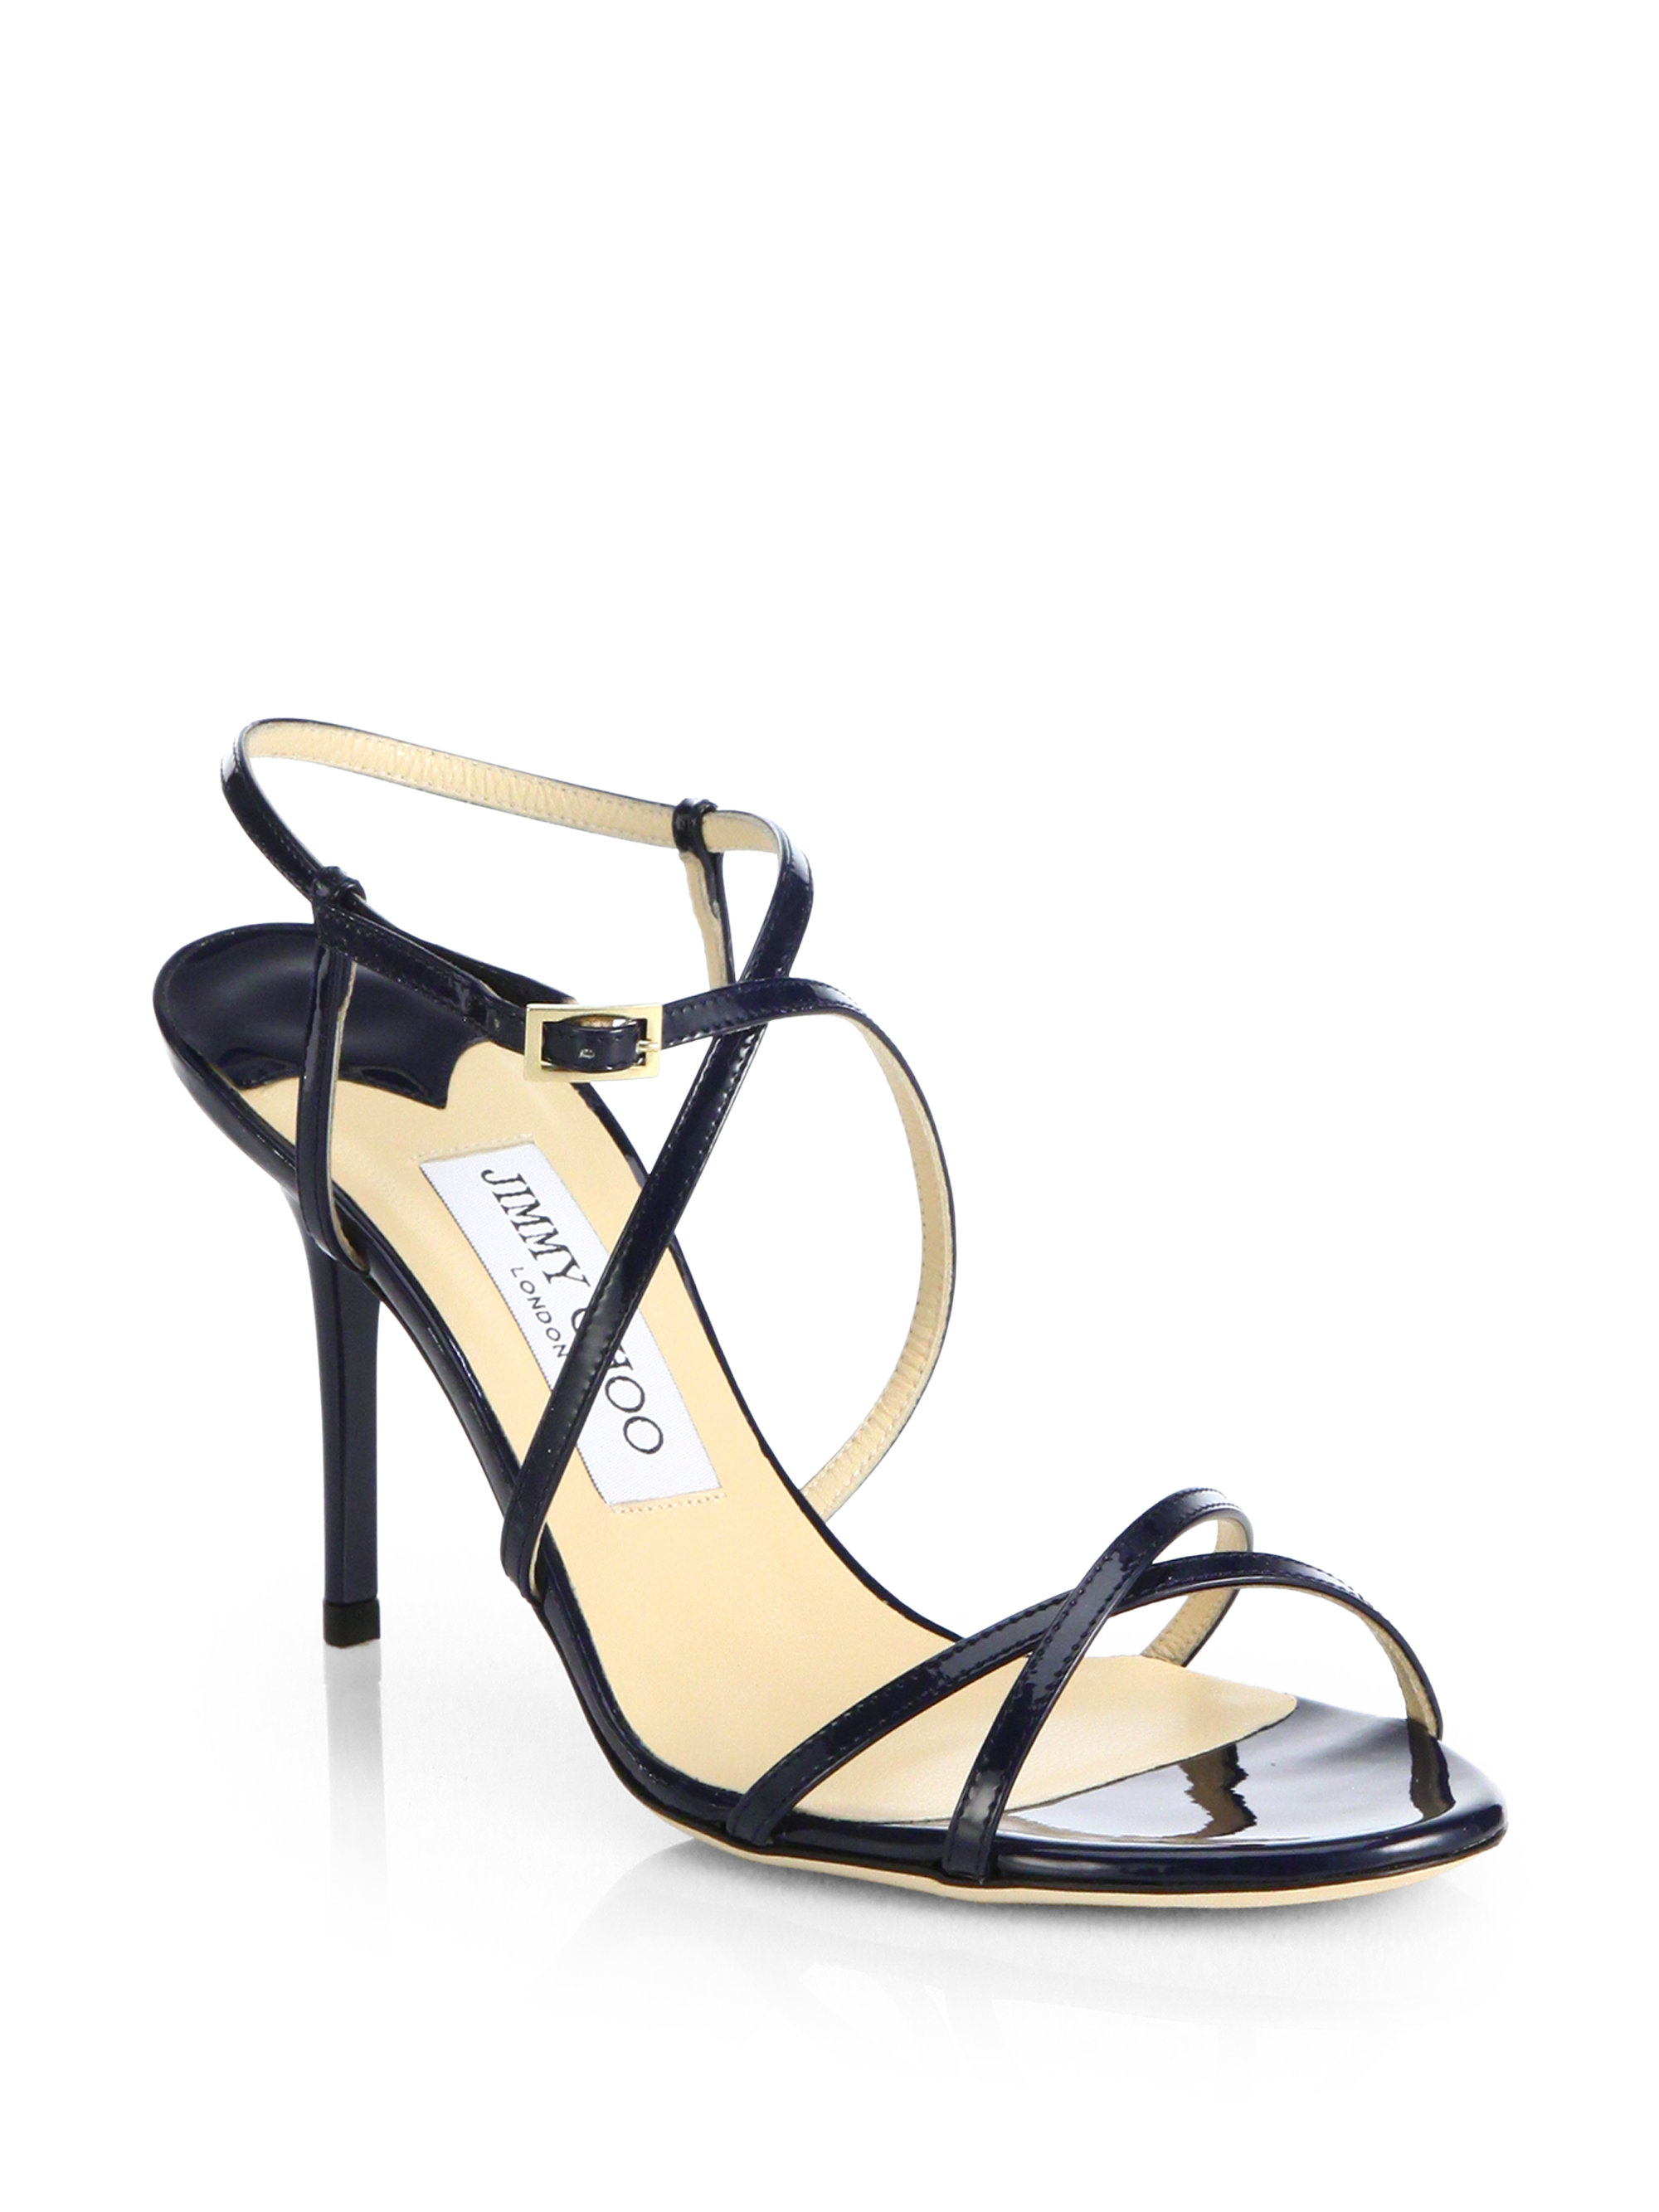 outlet footaction Jimmy Choo Snakeskin Ankle Strap Sandals outlet amazon 2015 new cheap price ebay cheap online buy cheap amazing price Ucu8uTU